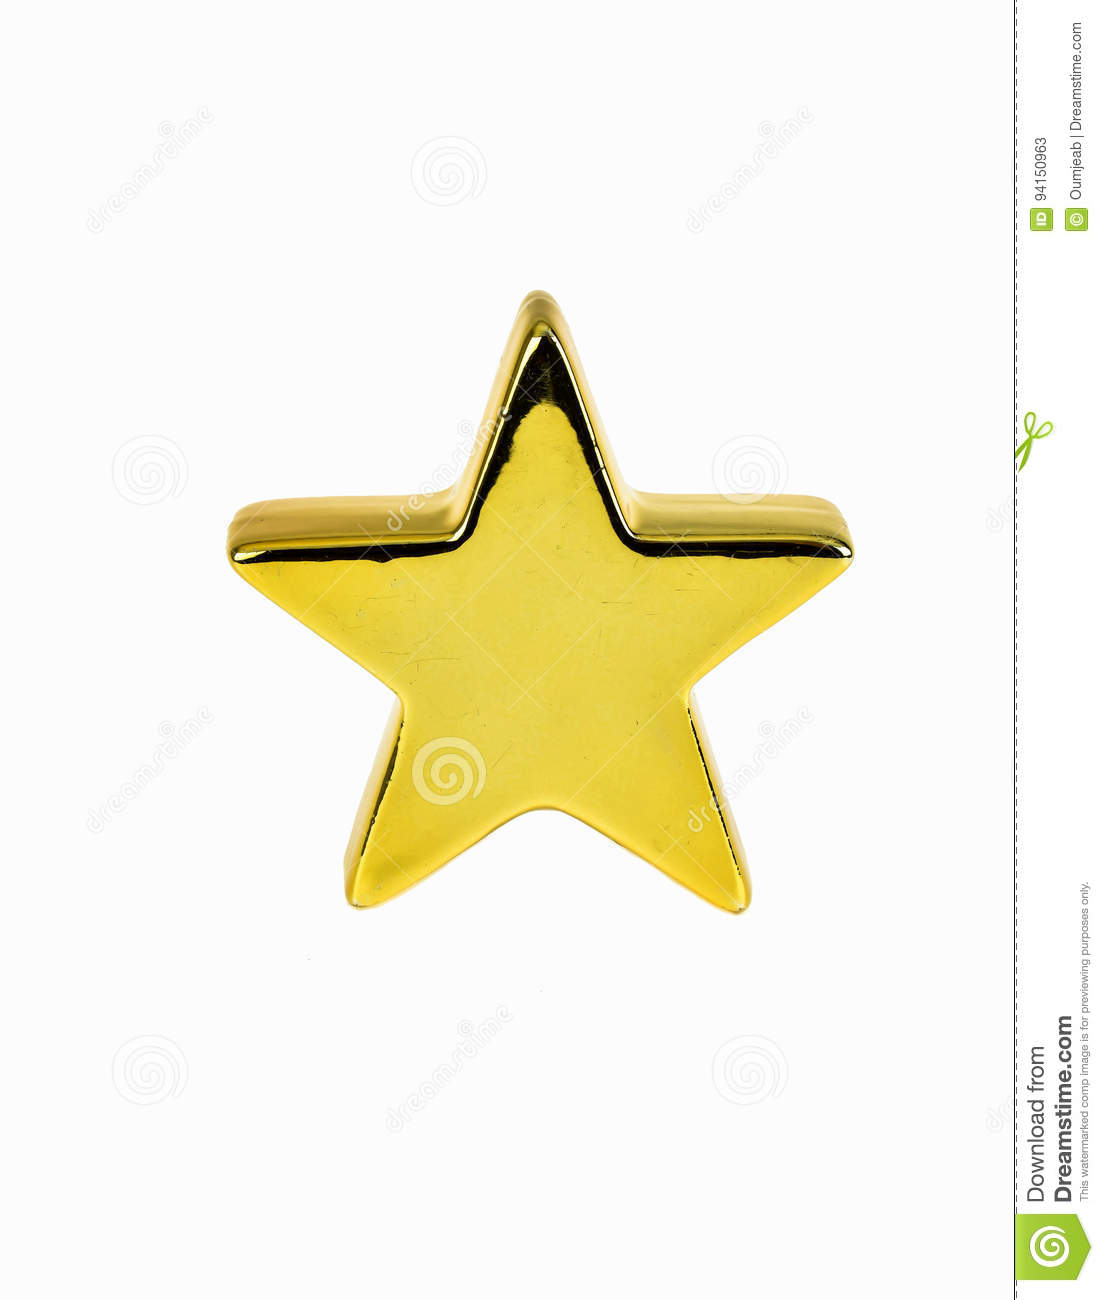 Gold Star Stock Photos - Royalty Free Images - photo #9